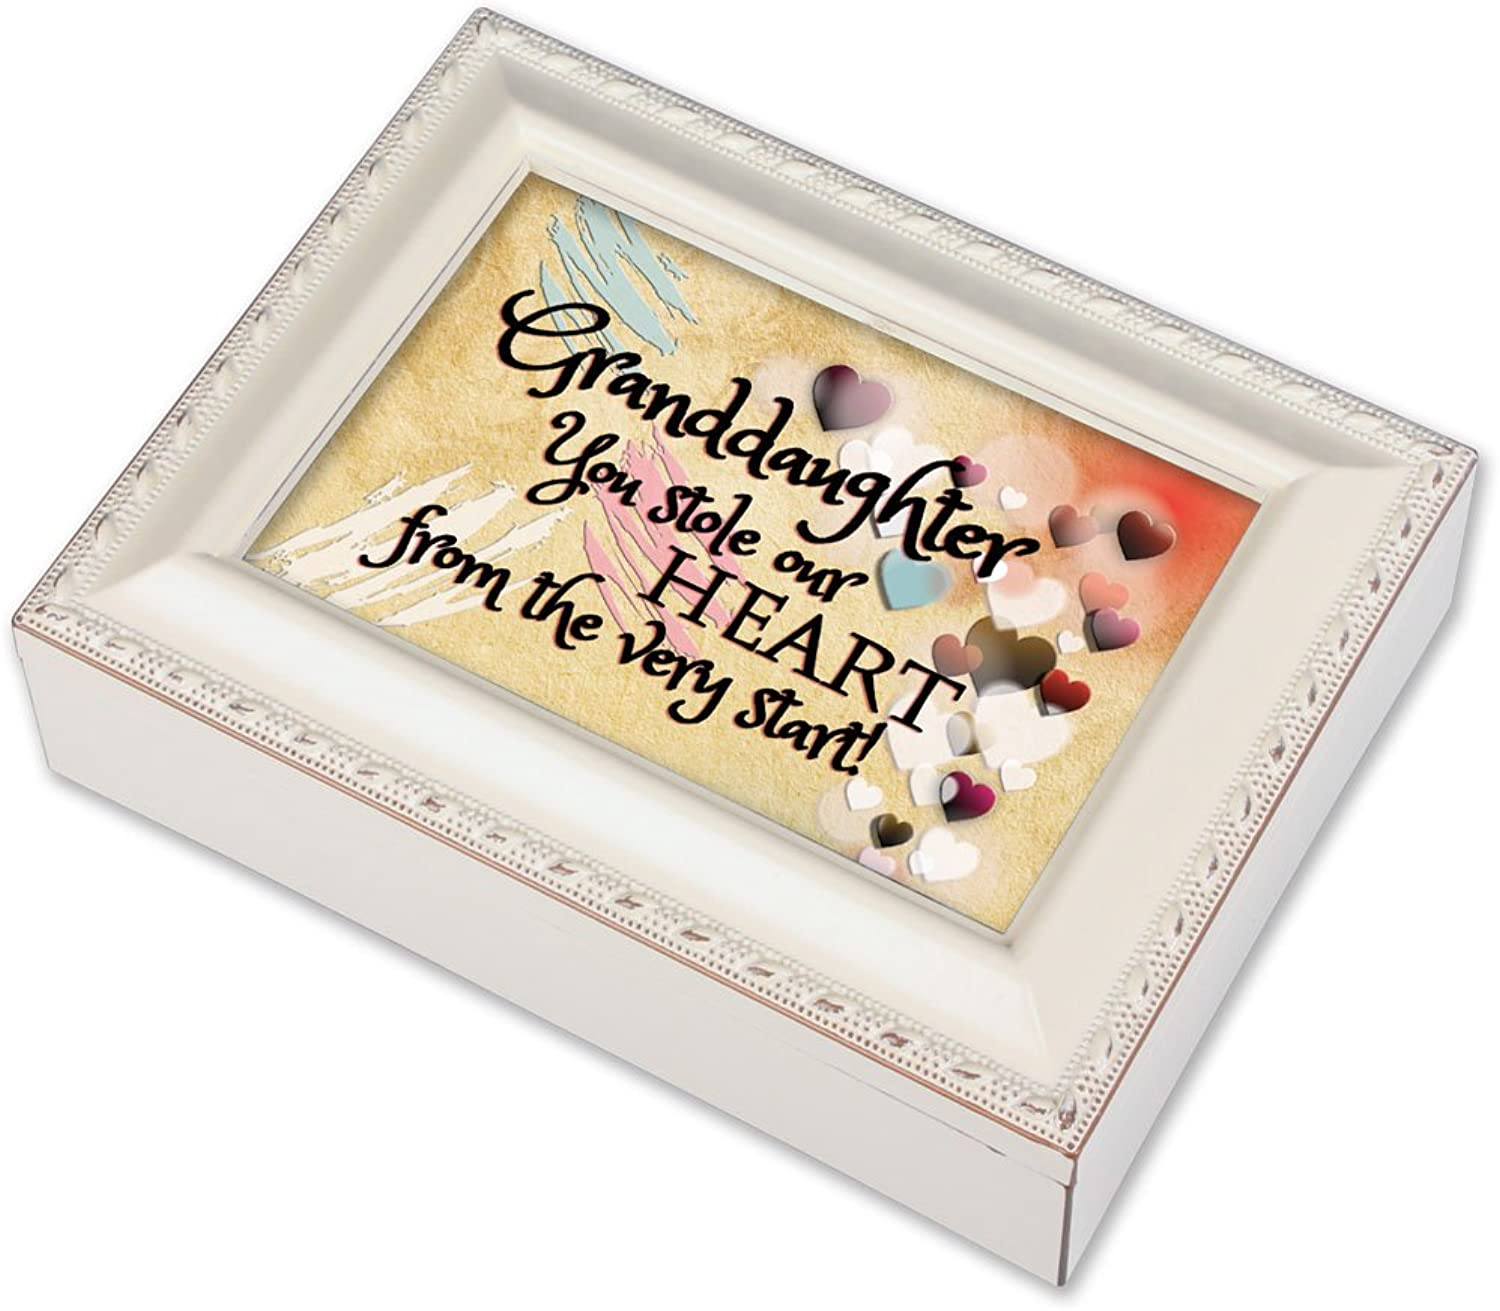 Cottage Garden Granddaughter Ivory Music Box Jewelry Box Plays You Light Up My Life